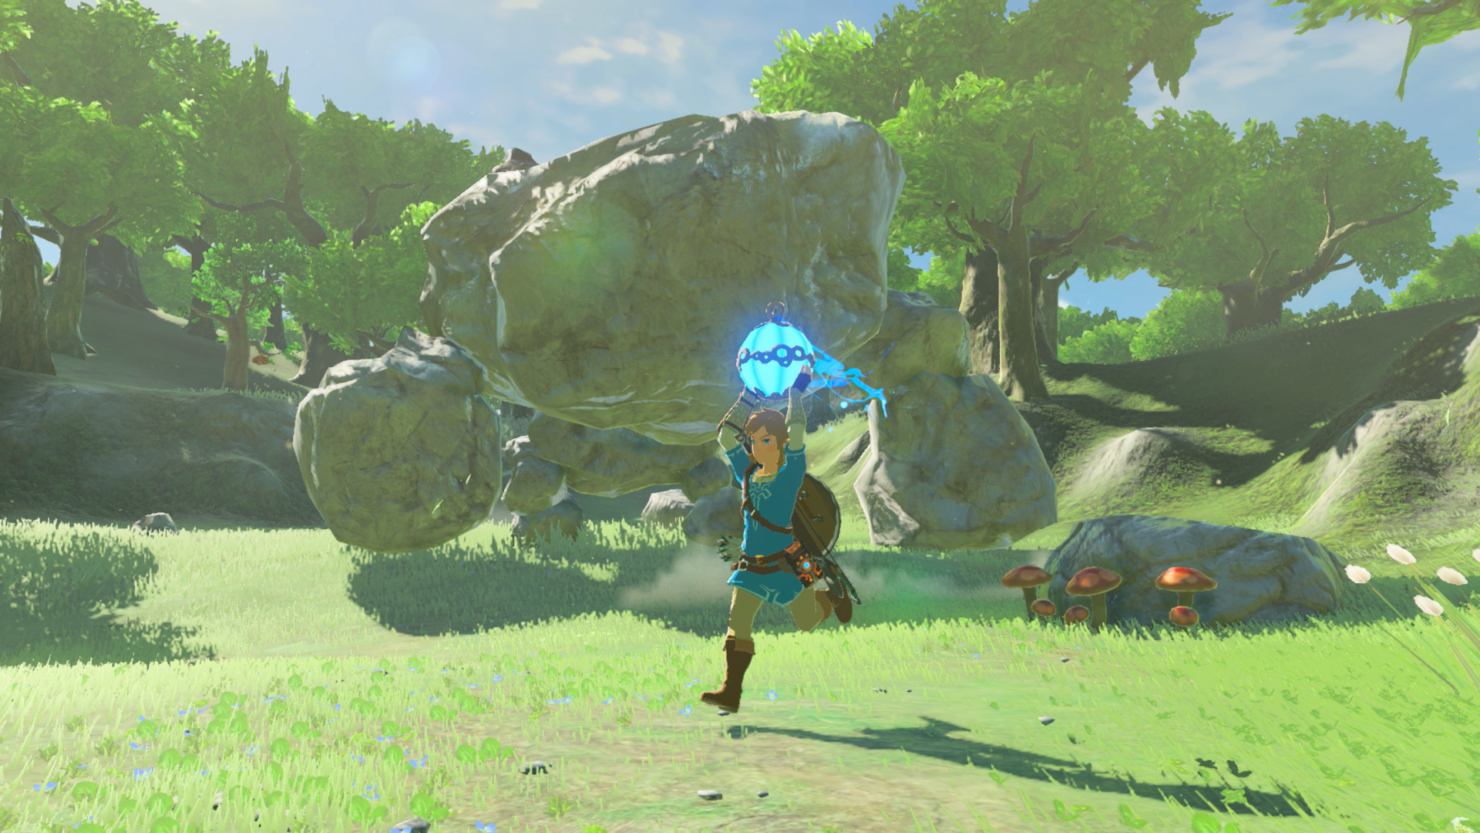 First official screenshots released for Zelda: Breath of